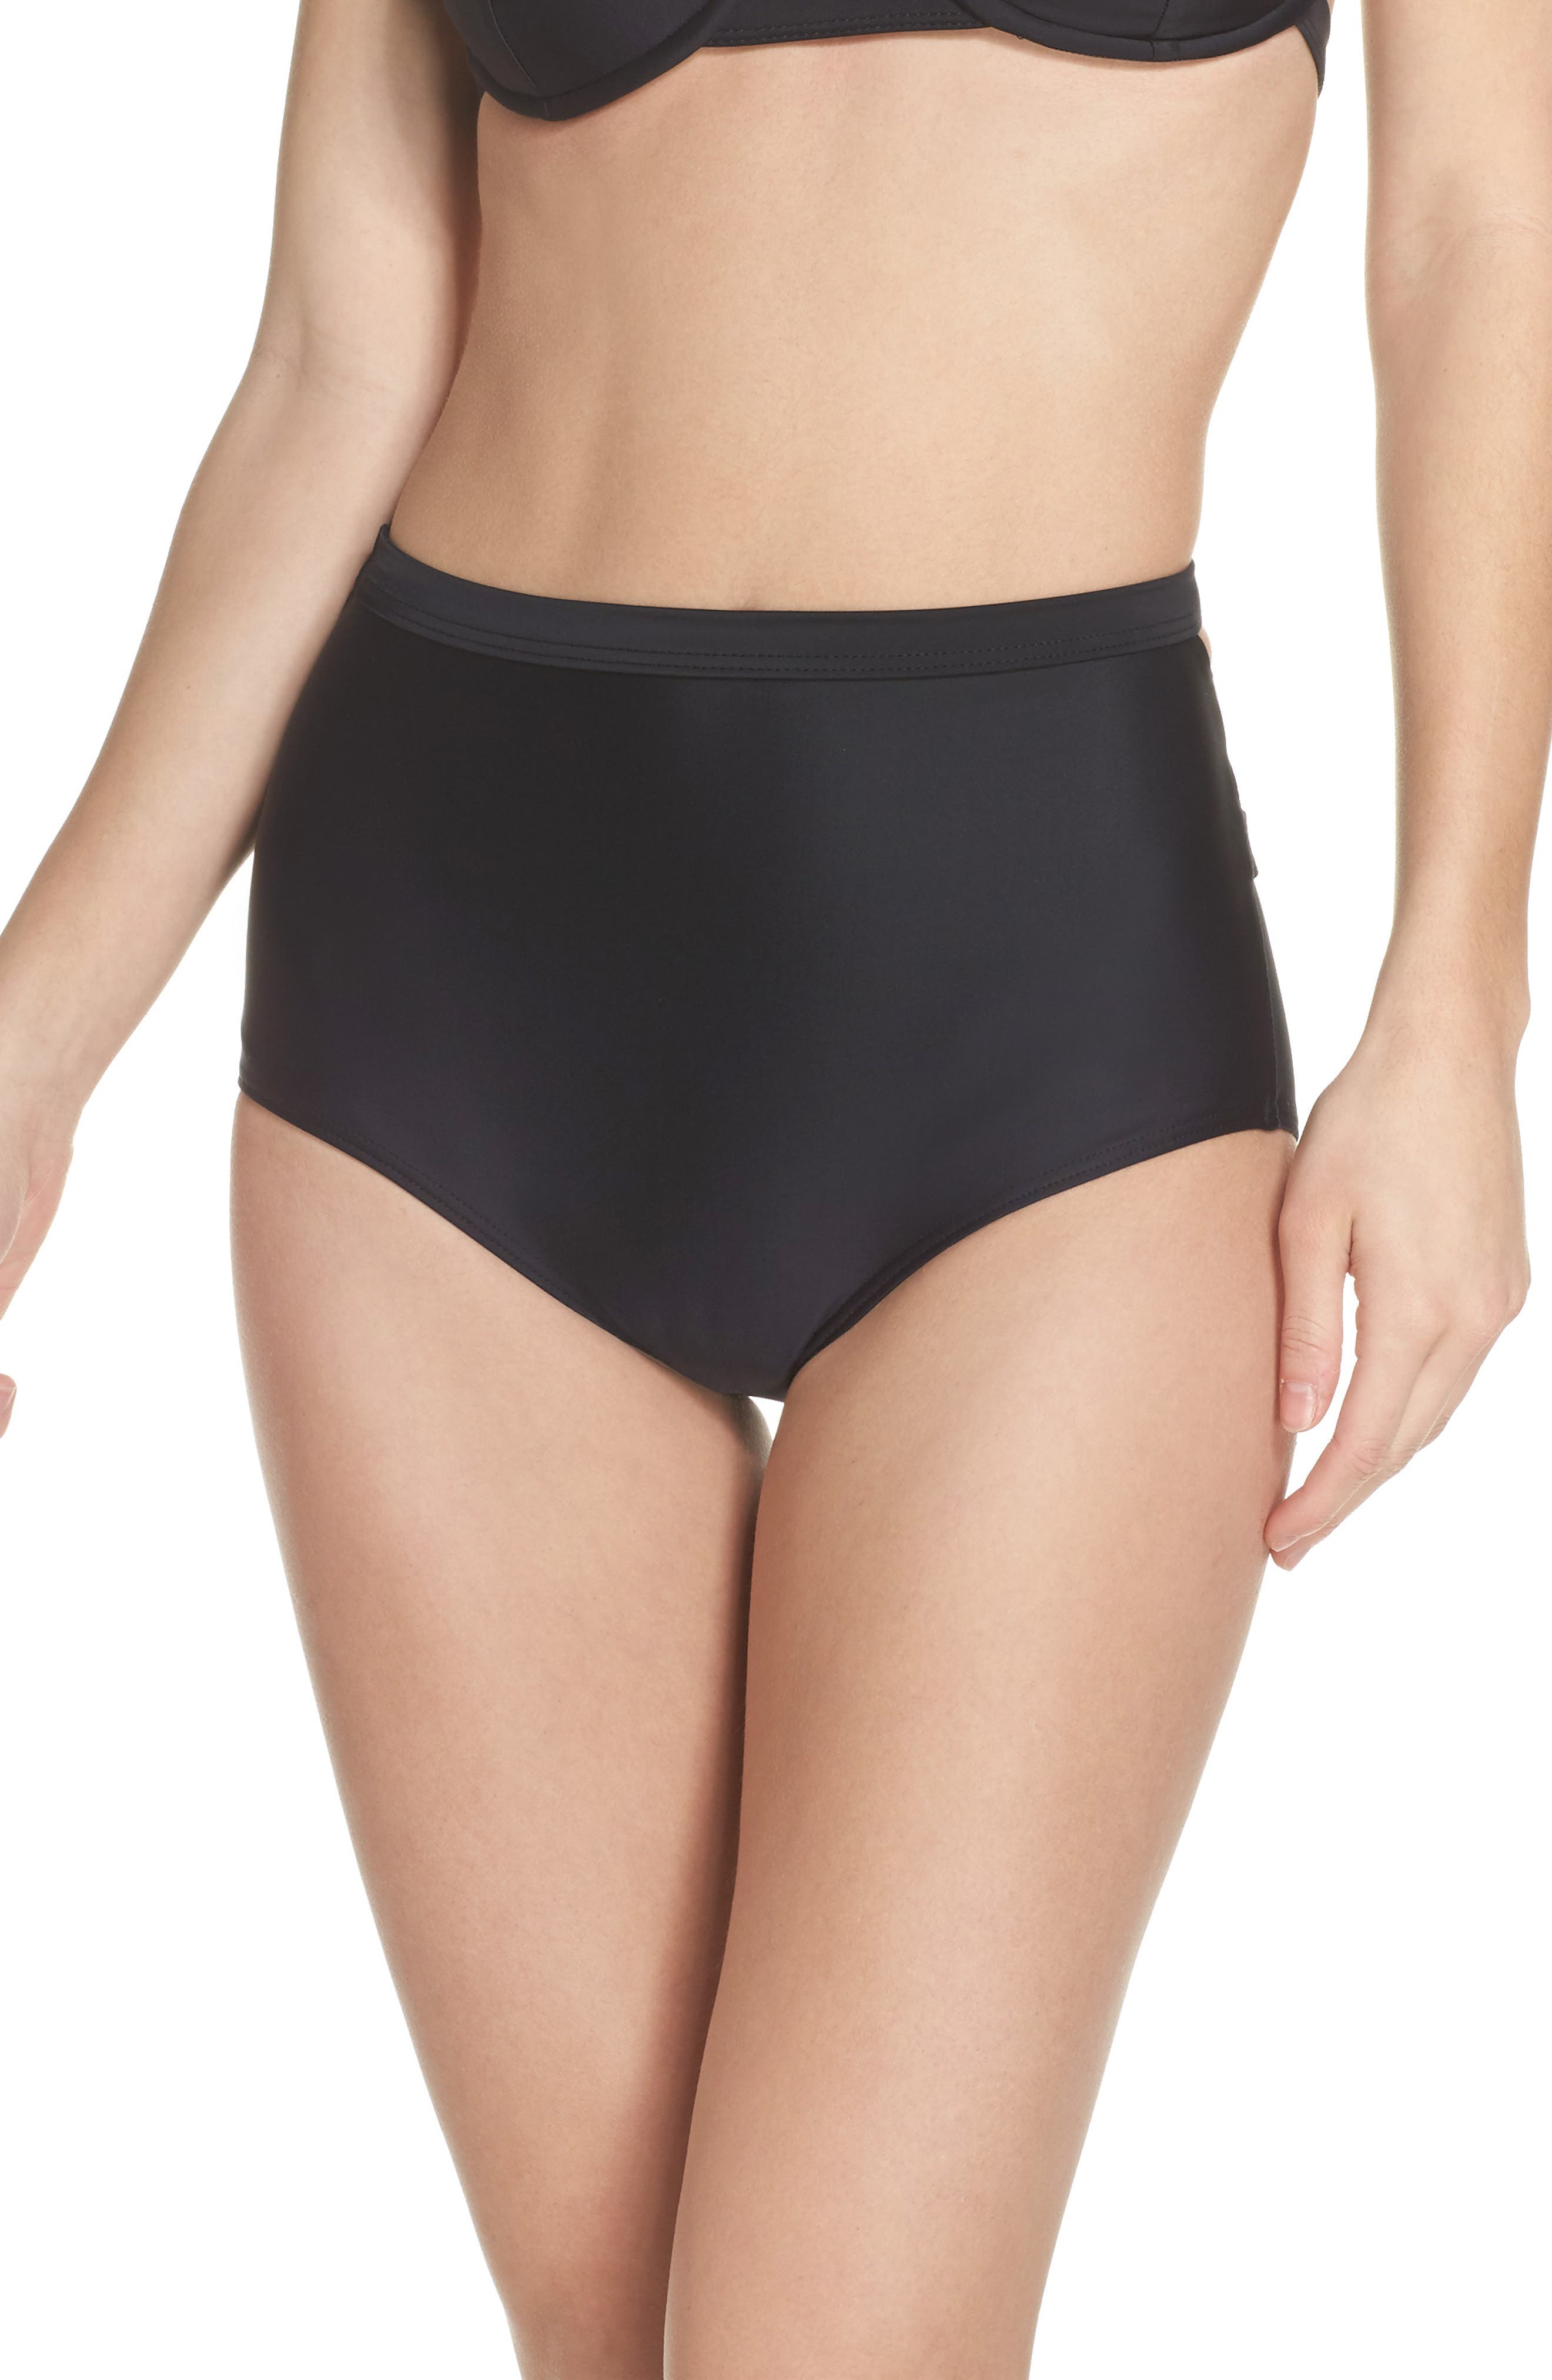 Bouloux II High Waist Bikini Bottoms,                         Main,                         color, Black